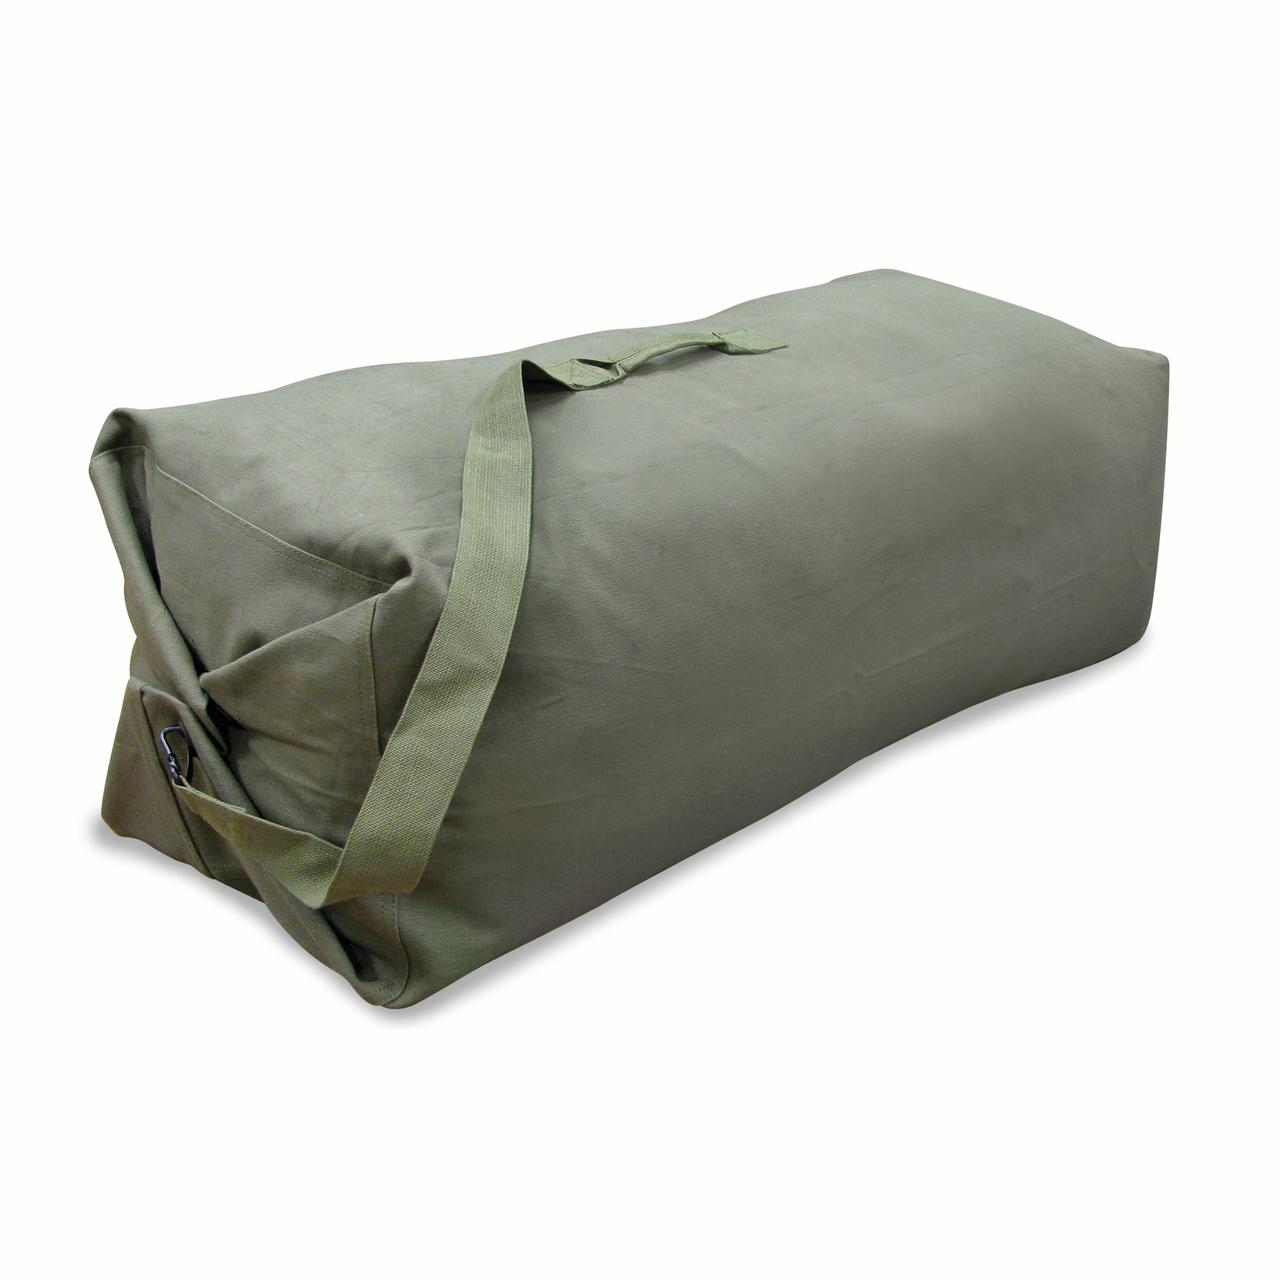 """Stansport Duffel Bag with Strap - O.D. - 50"""" x 14.5"""" x 14.5"""